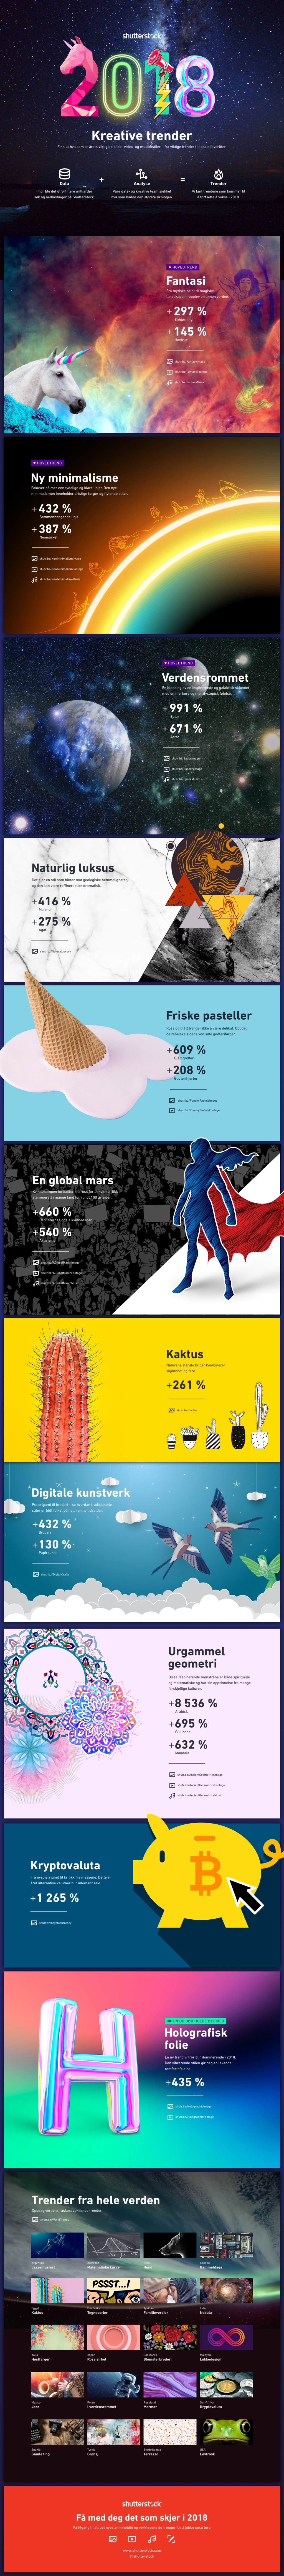 2018 Creative Trends Norwegian Infographic